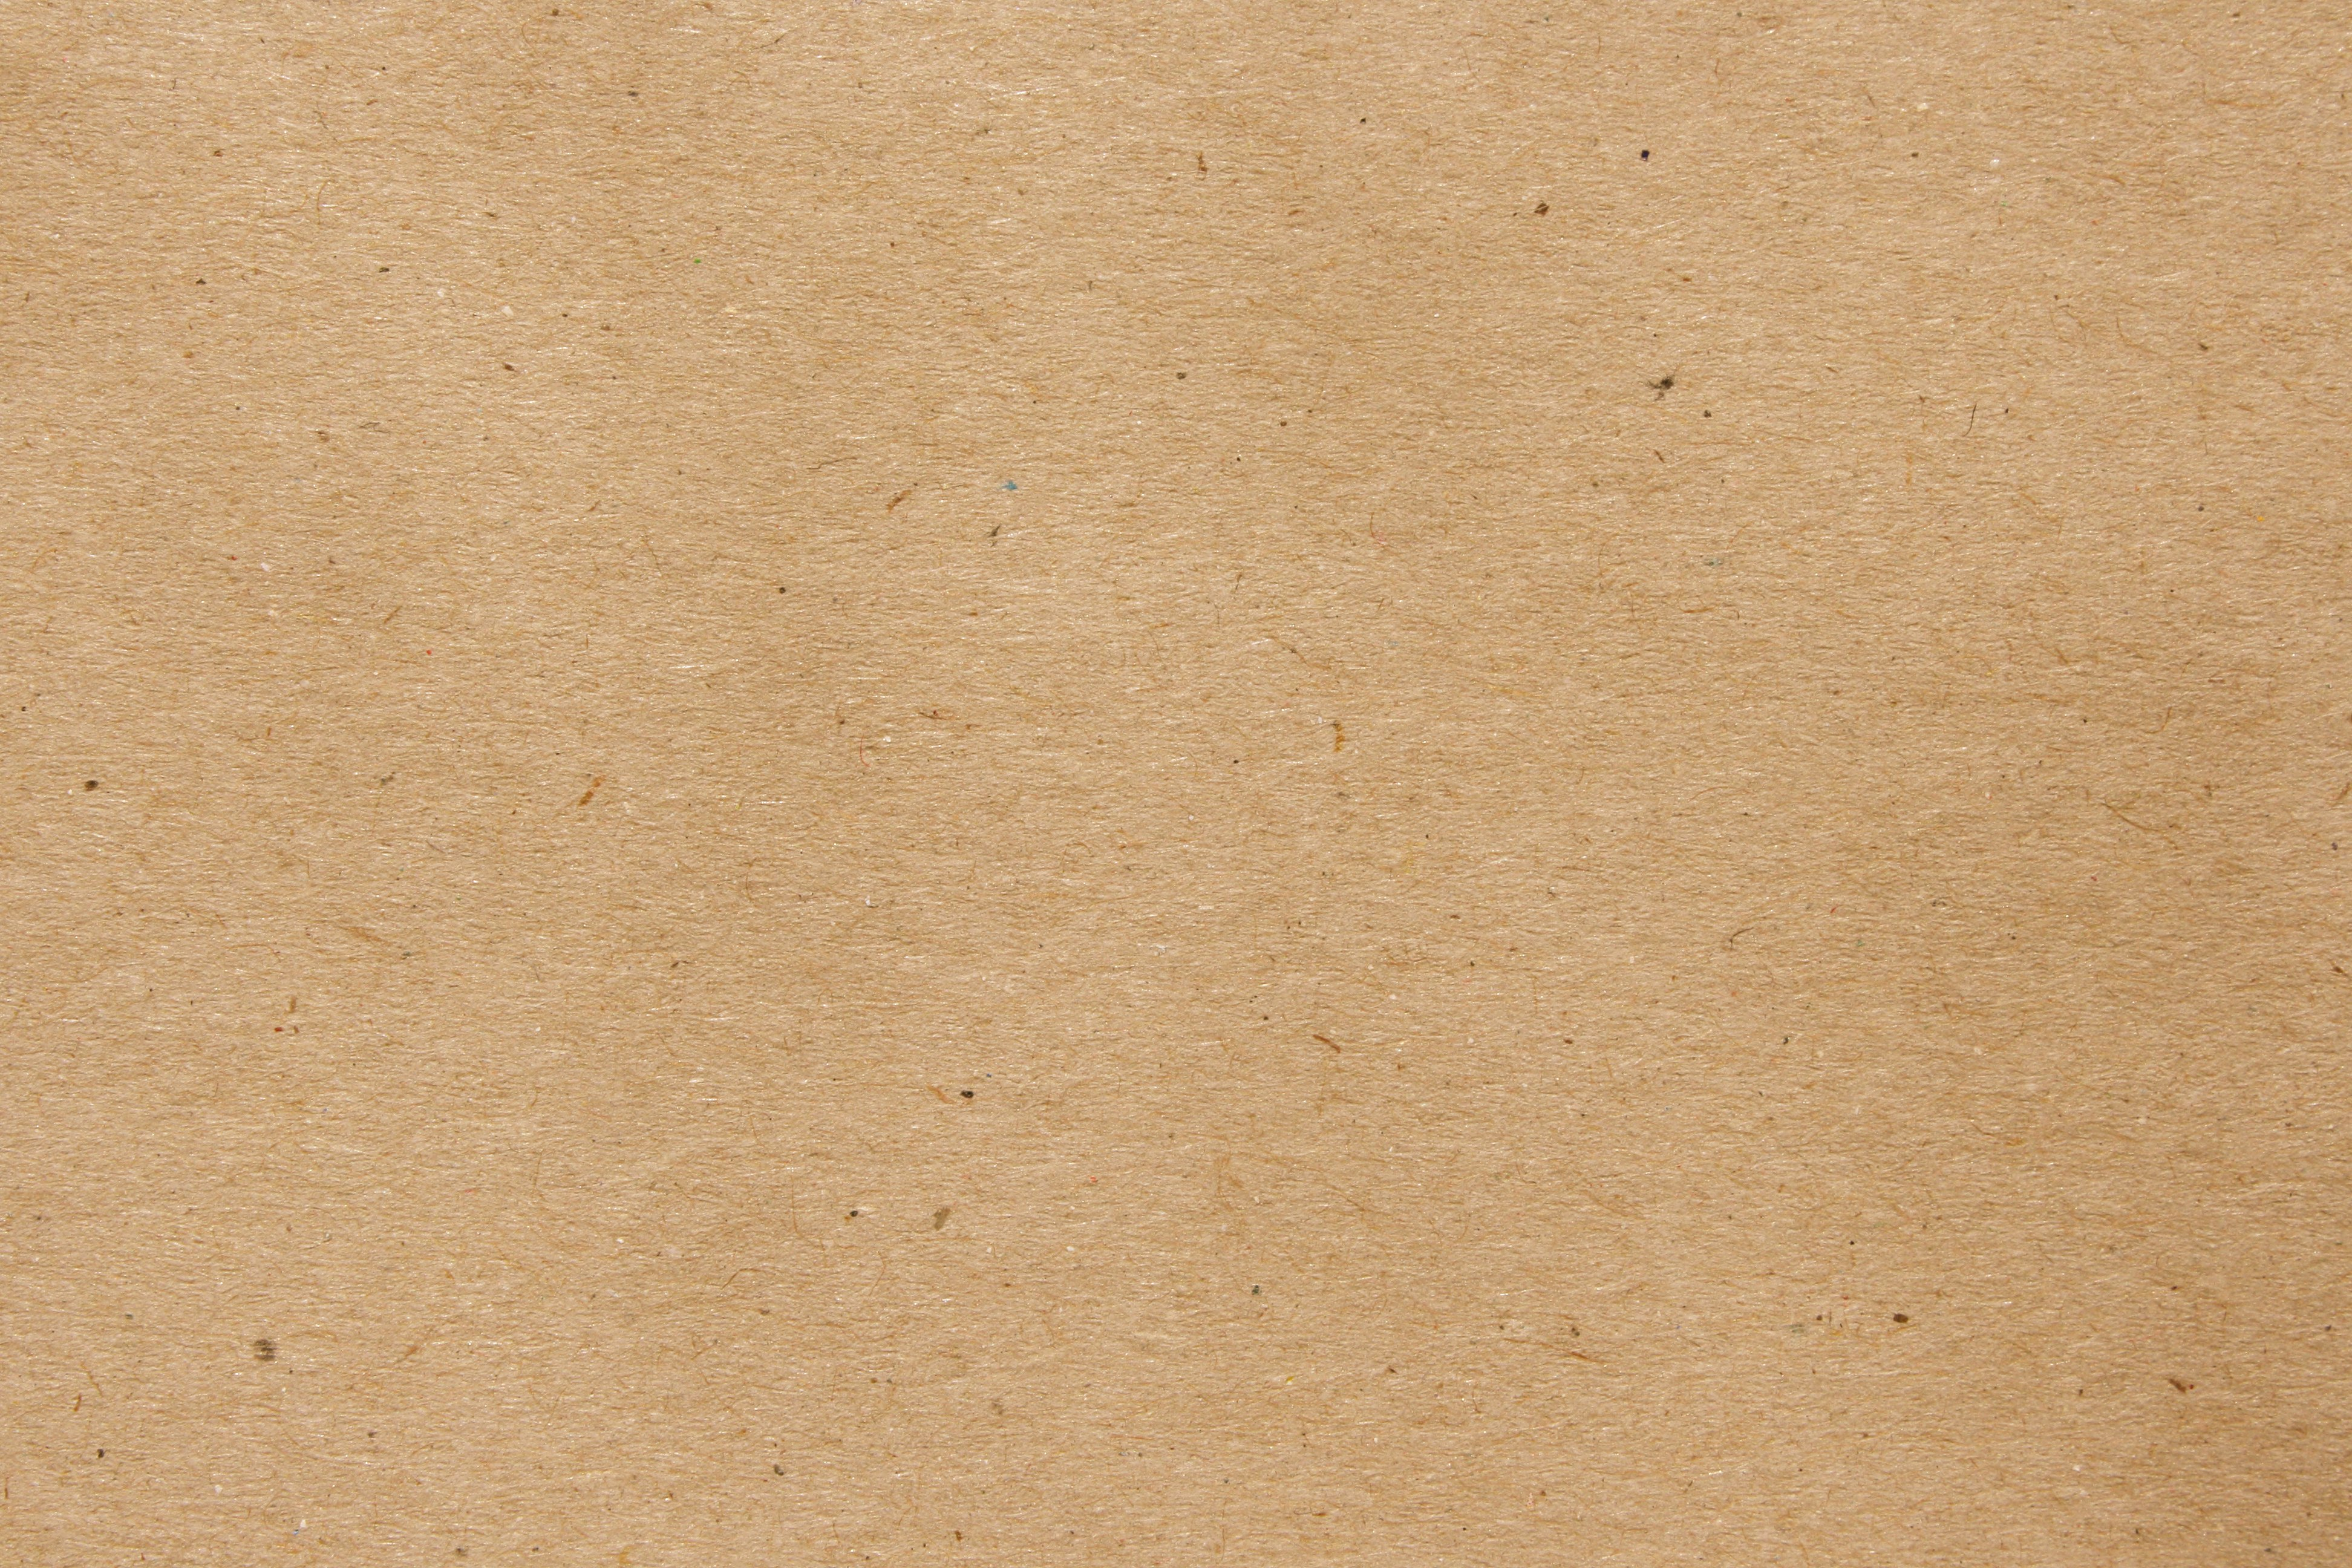 Light Brown or Tan Paper Texture with Flecks - Free High Resolution    Brown Paper Texture